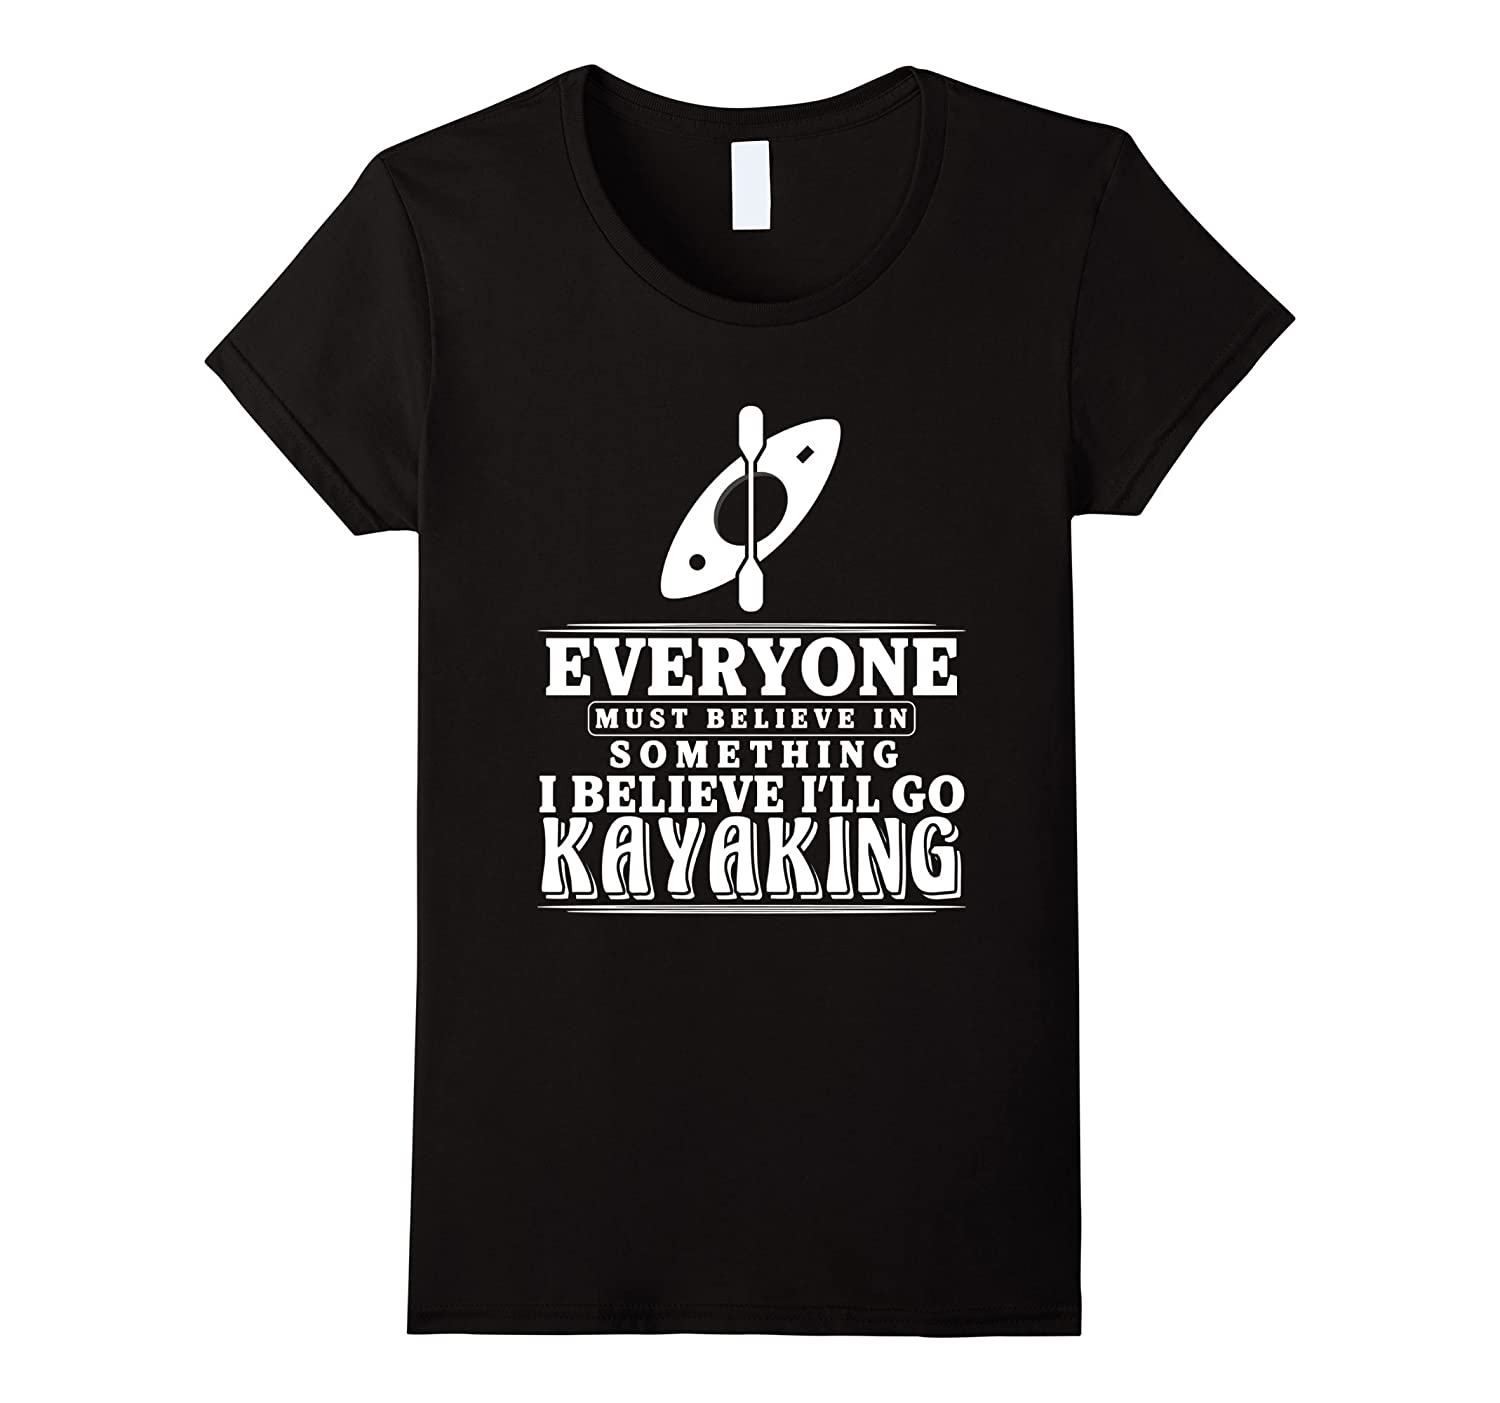 Kayaking T Shirt Kayak Boats Paddling Water Sports Believe